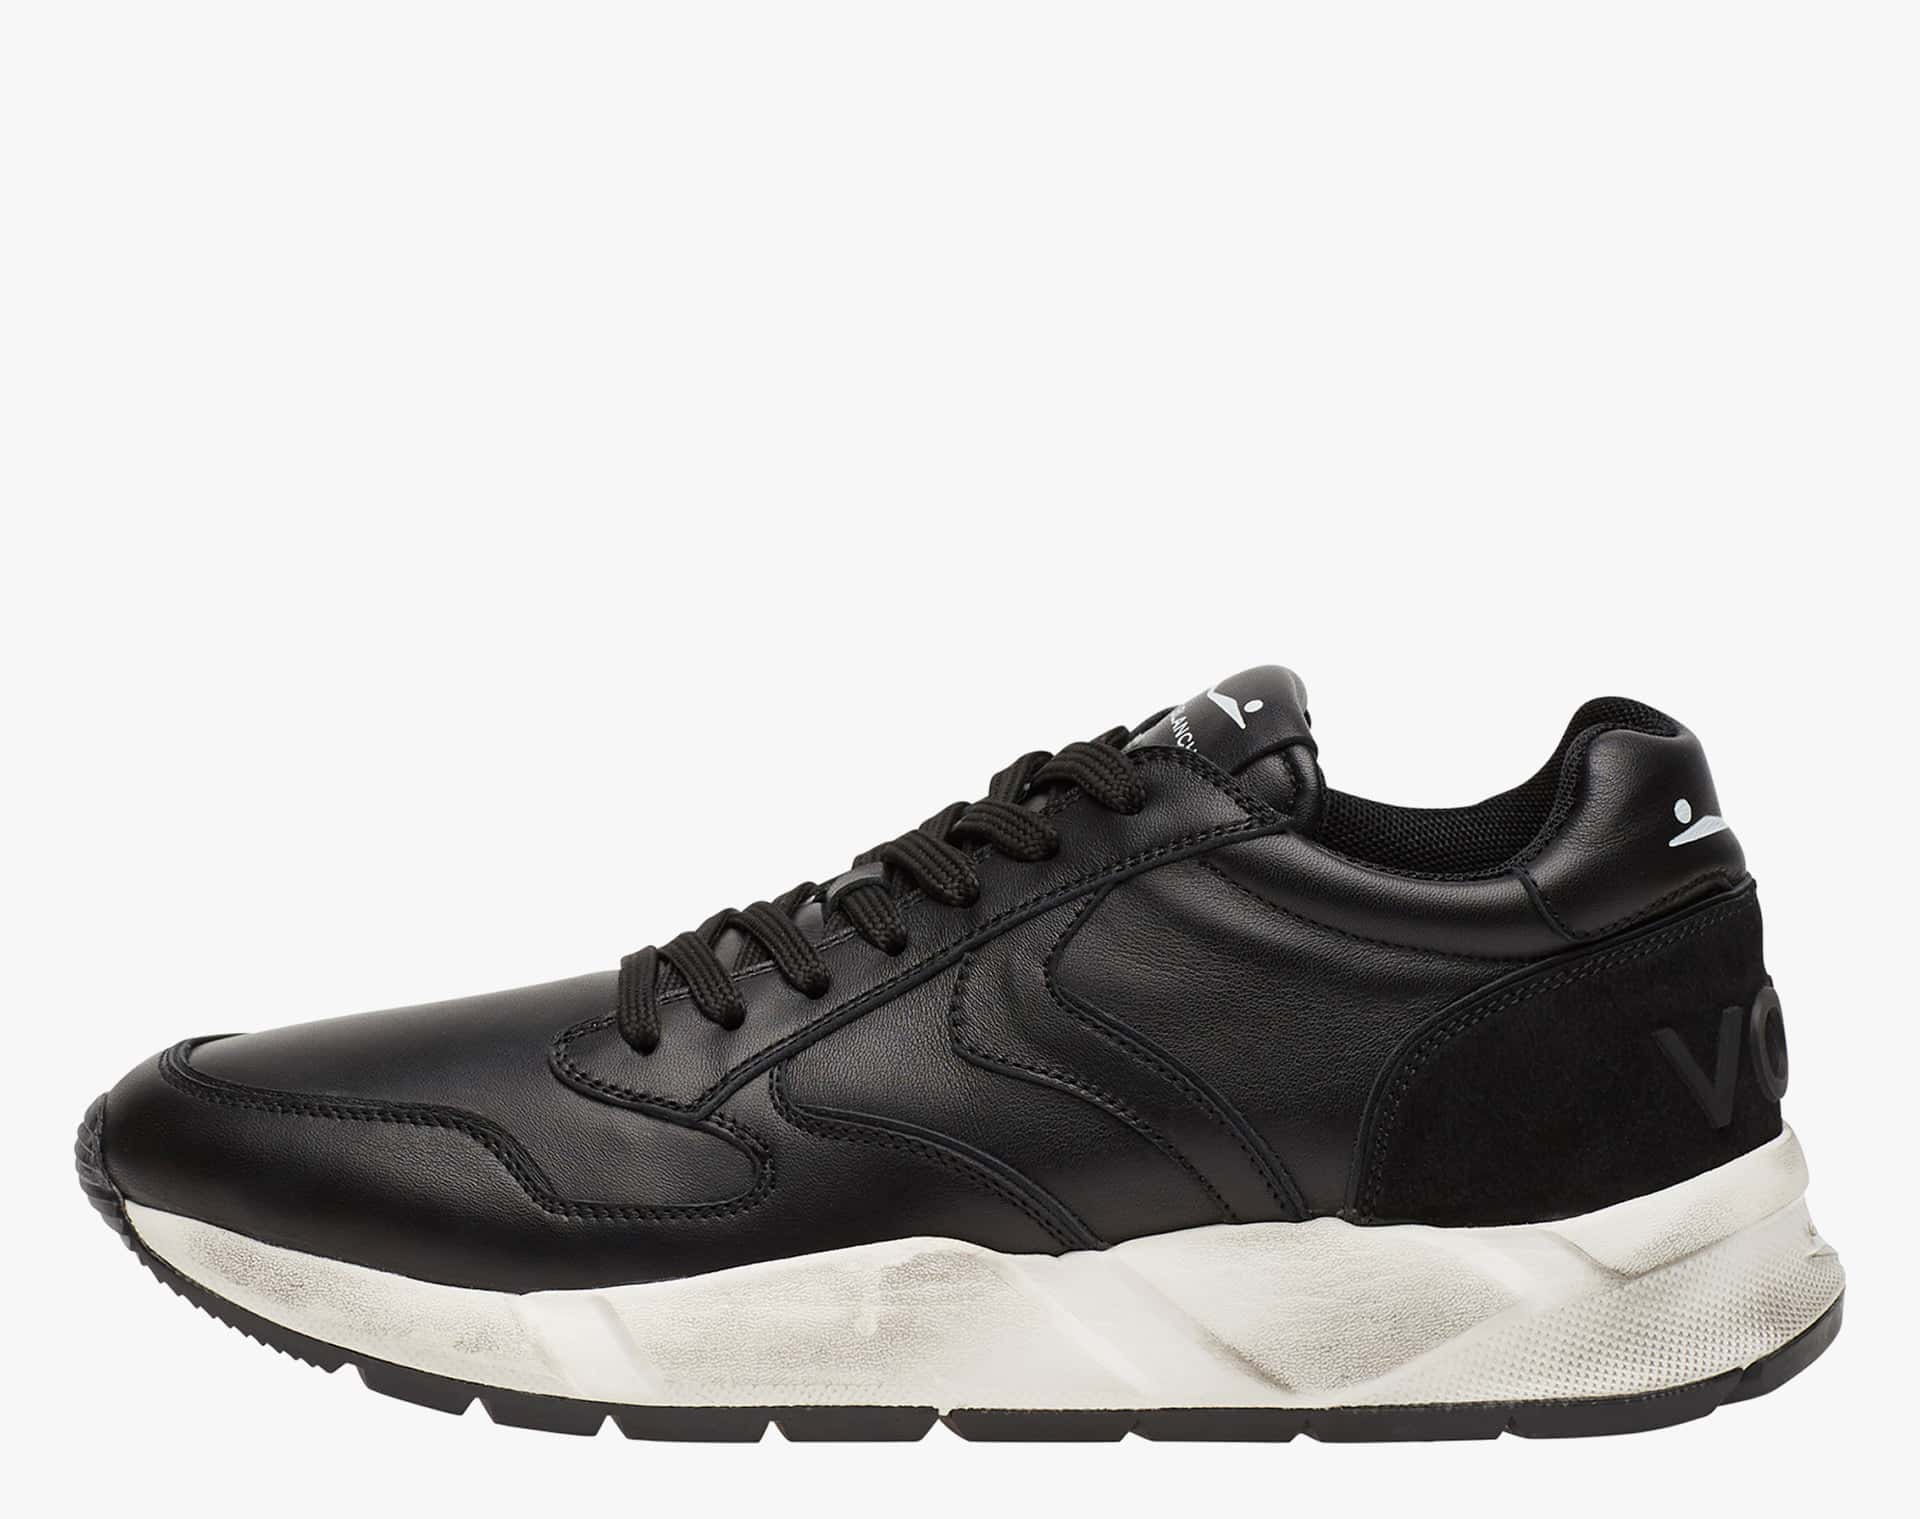 ARPOLH - Leather sneakers - DIRTIED CALFSKIN